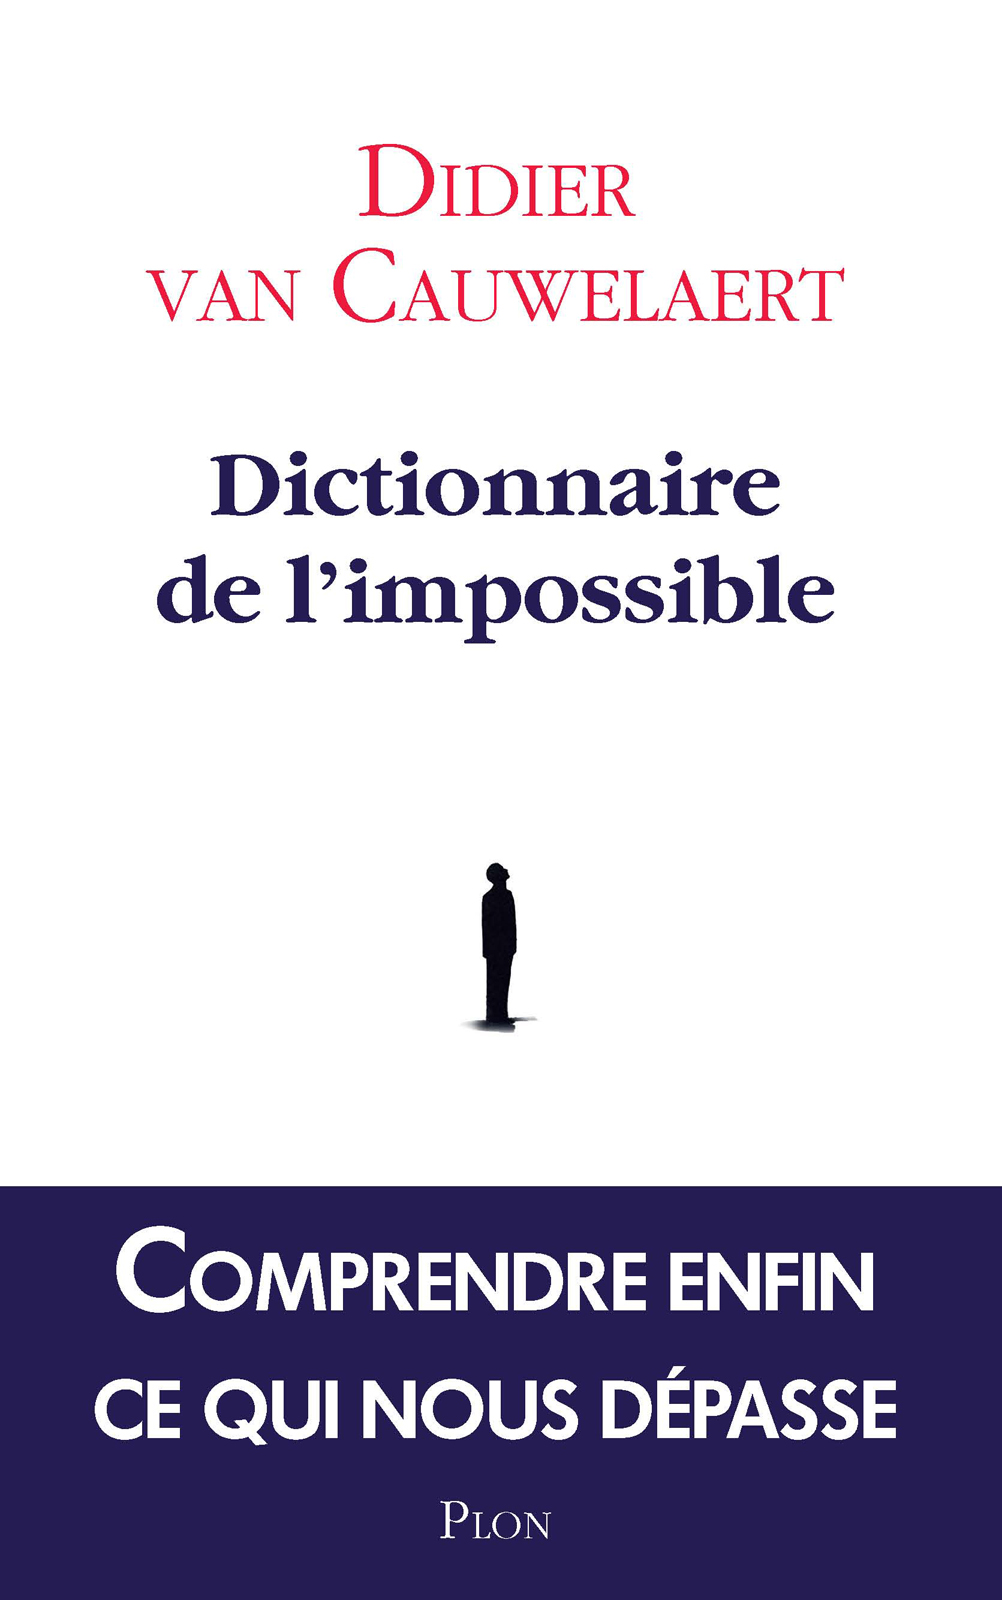 Dictionnaire de l'impossible | VAN CAUWELAERT, Didier